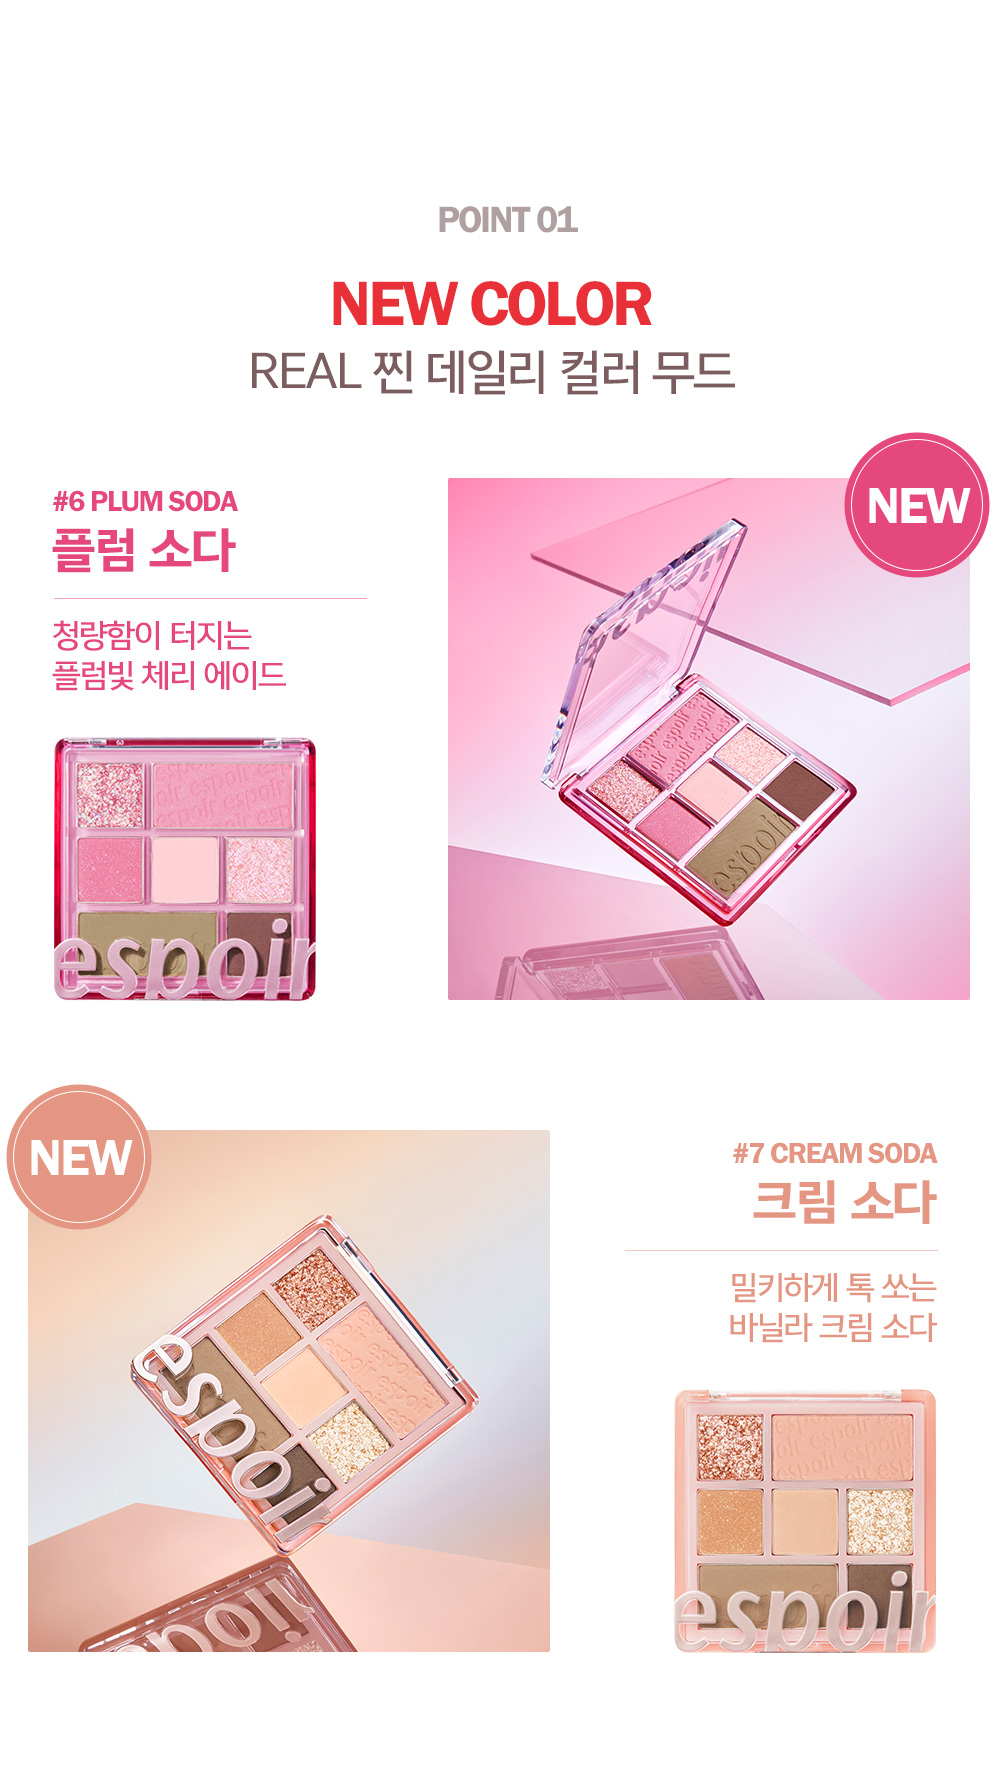 POINT 01. NEW COLOR - REAL 찐 데일리 컬러 무드